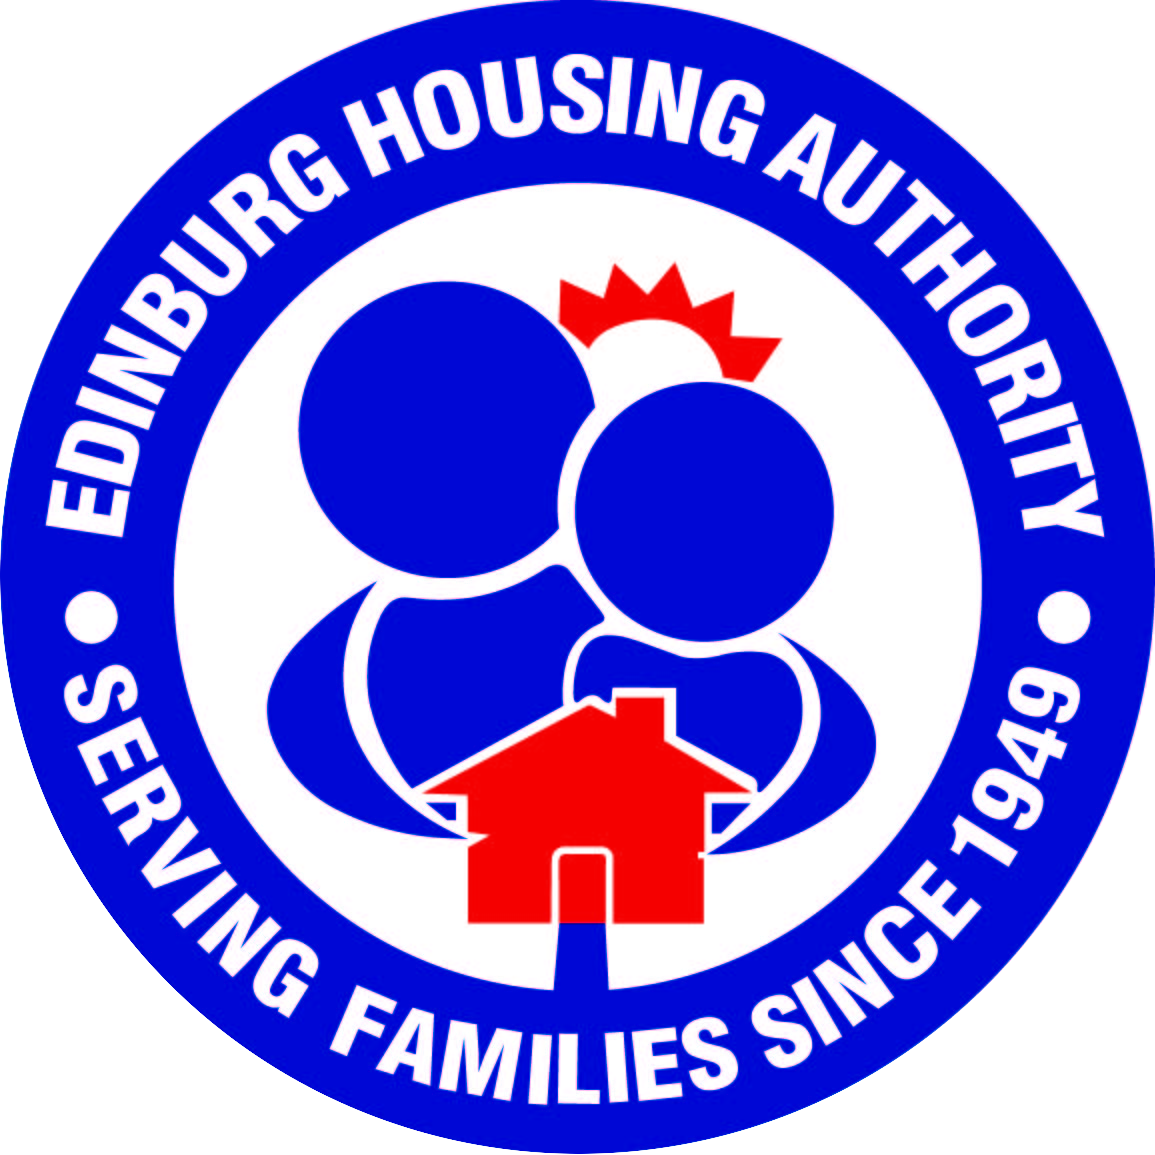 The Edinburg Housing Authority Eha Section 8 Housing Choice Voucher Waiting List Is Currently Open Until October 31 2016 At 11 59 Edinburg Author Section 8